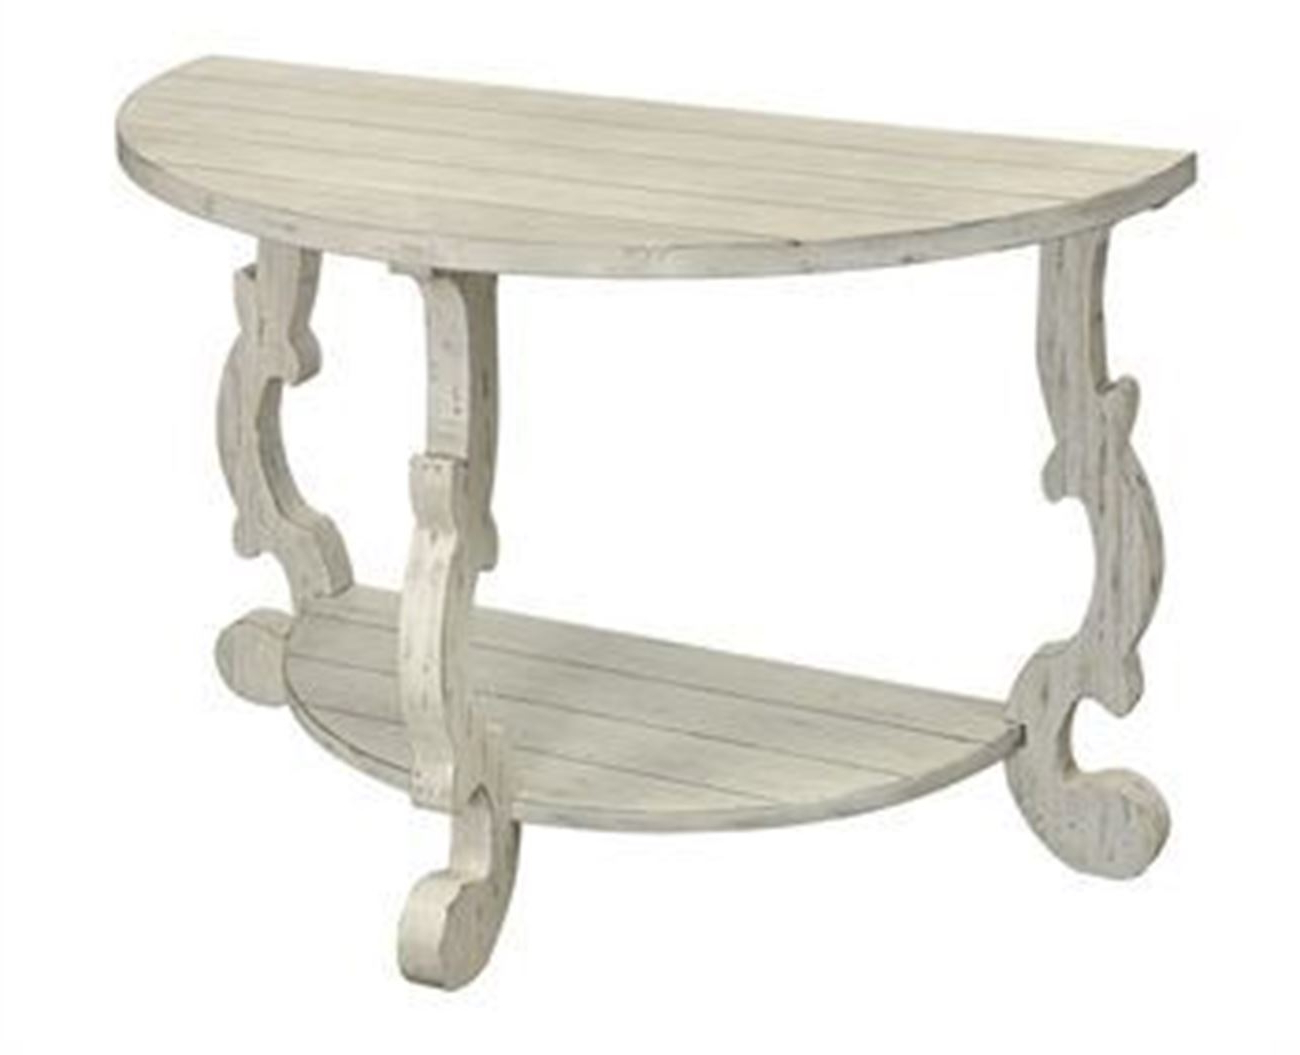 Demilune Console Table Within Clairemont Reviews Crate And Barrel Inside Clairemont Demilune Console Tables (View 10 of 20)